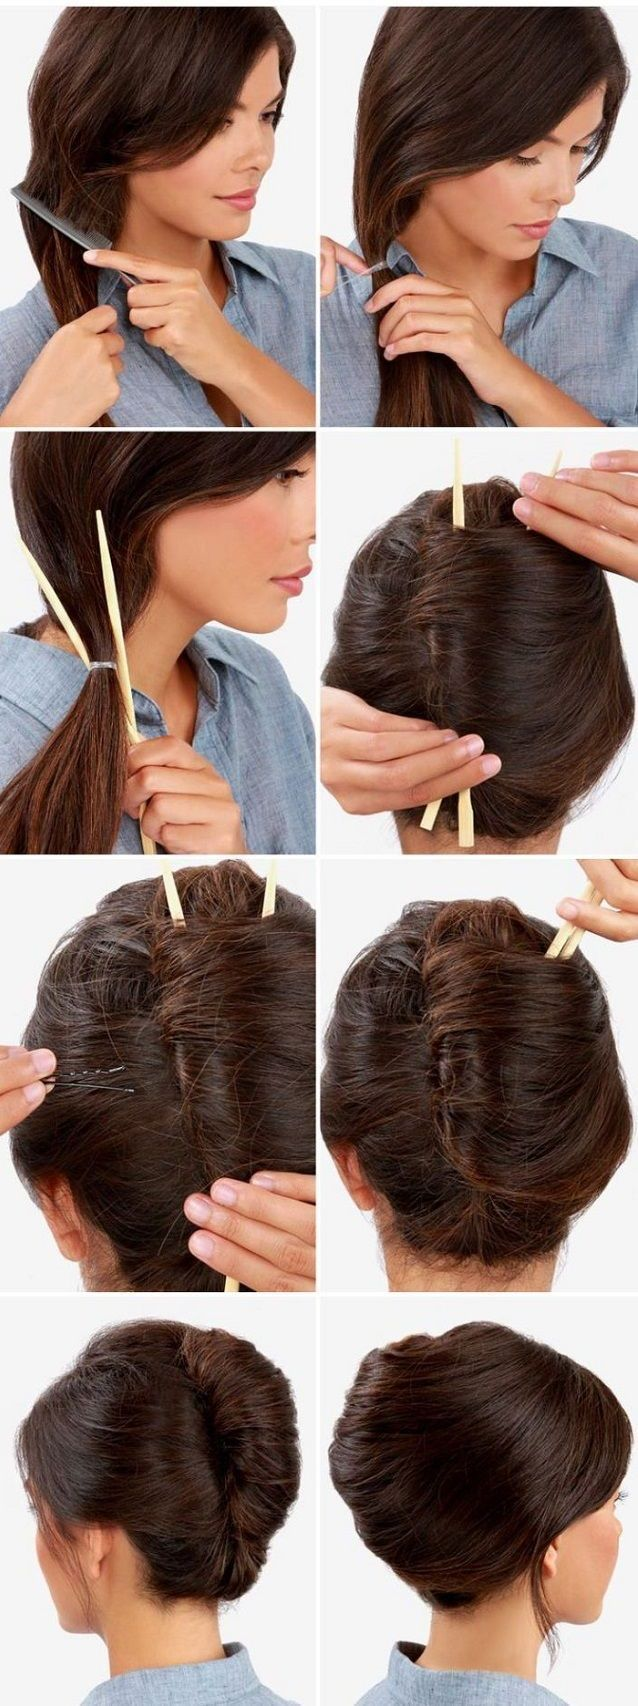 How to make a french twist hairstyle using chopsticks thing i wish